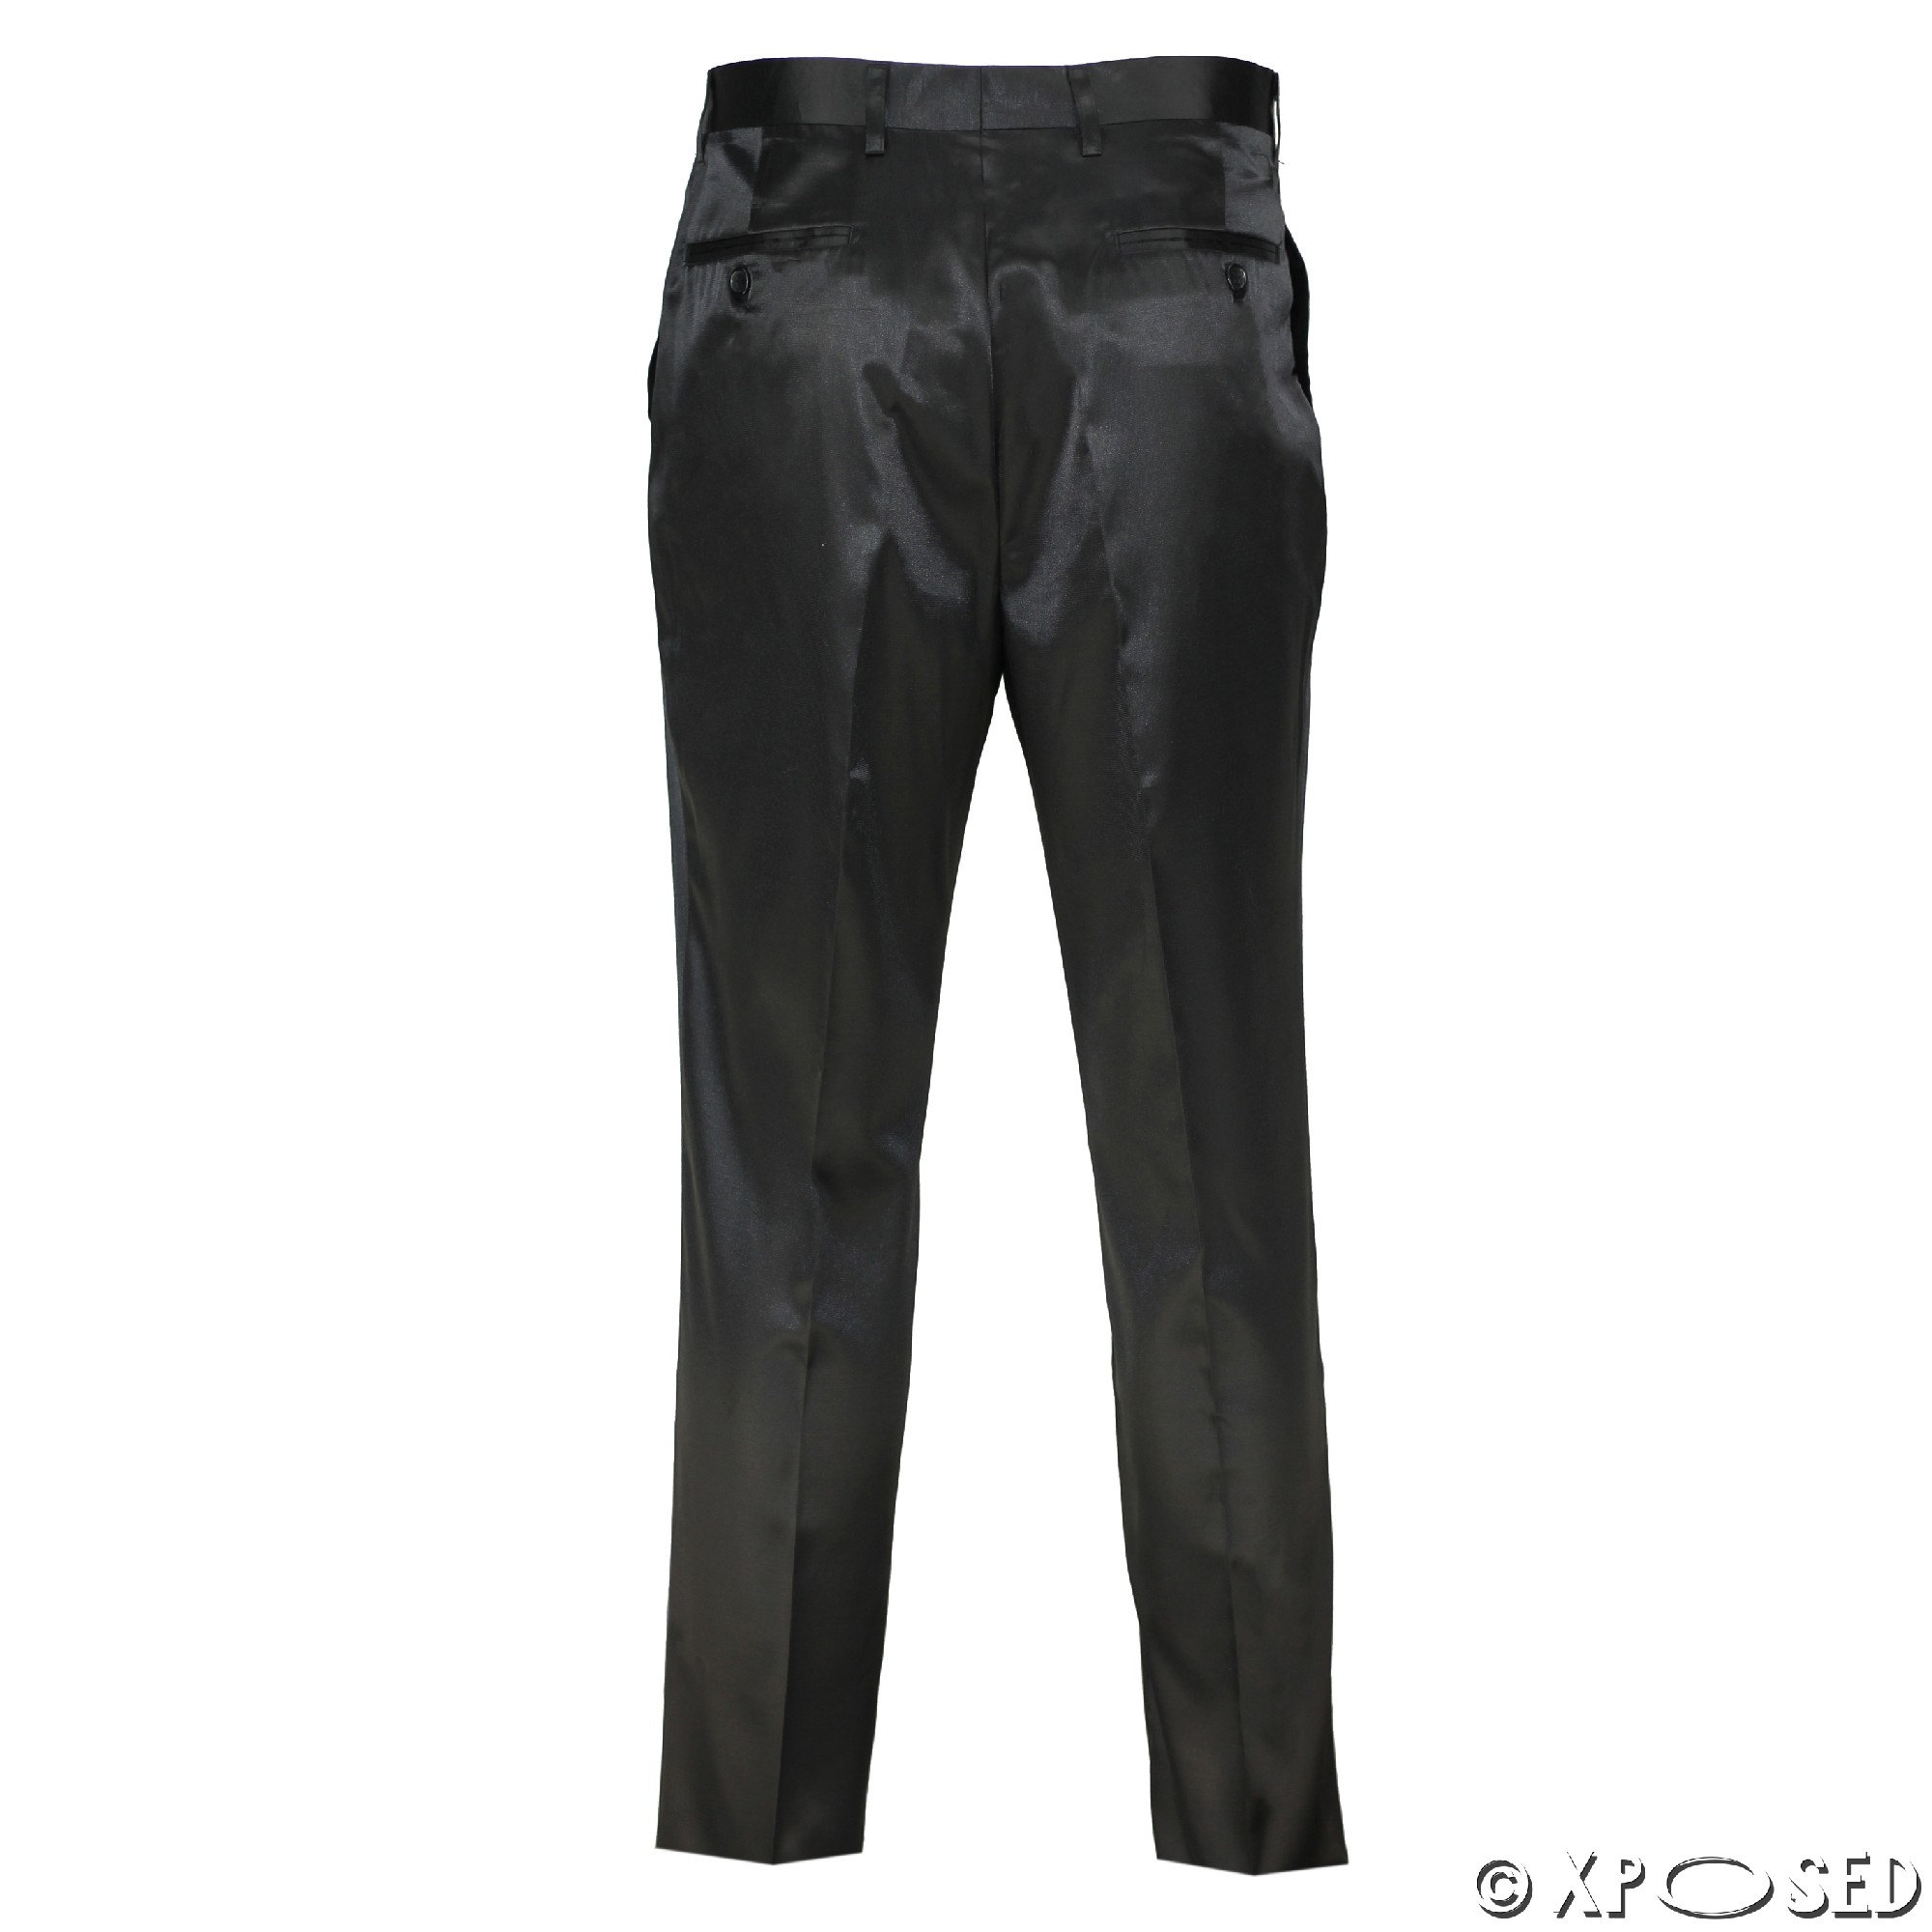 29e18b1ee Mens Silky Feel Satin Shiny Black Slim Fit Trousers Party Weeding ...